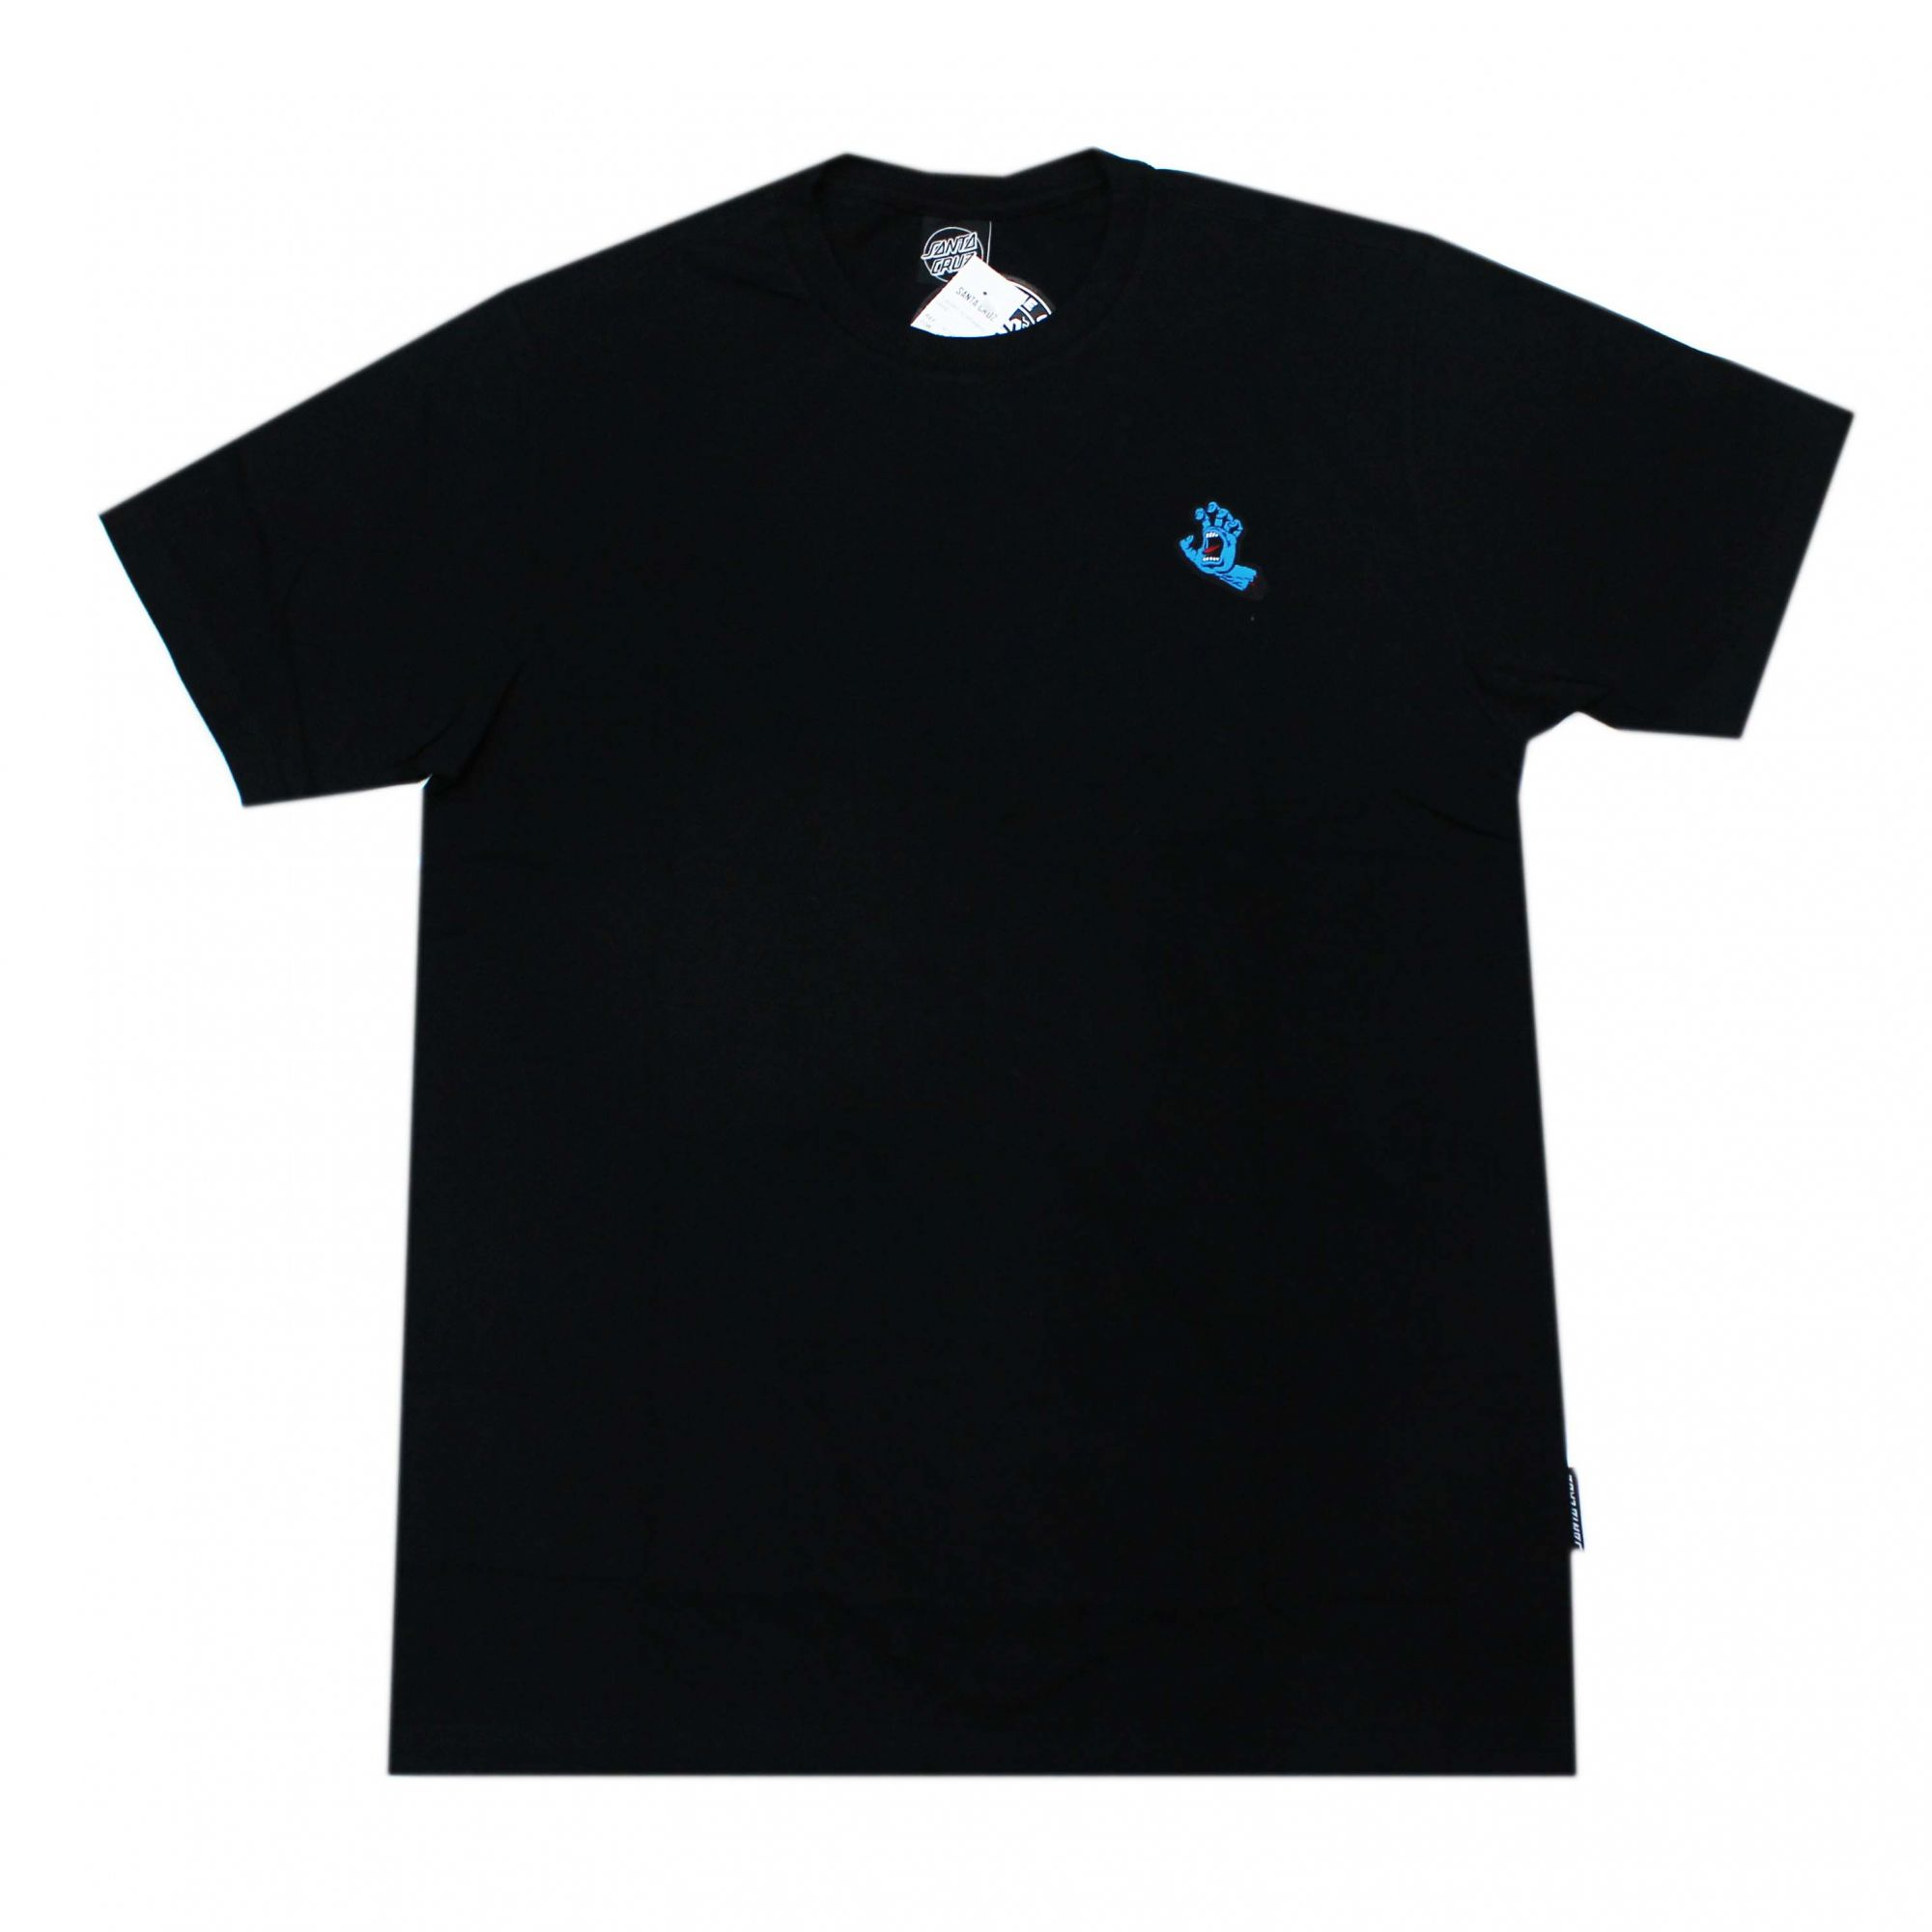 Camiseta Santa Cruz Mini Patch Screaming Hand Preto